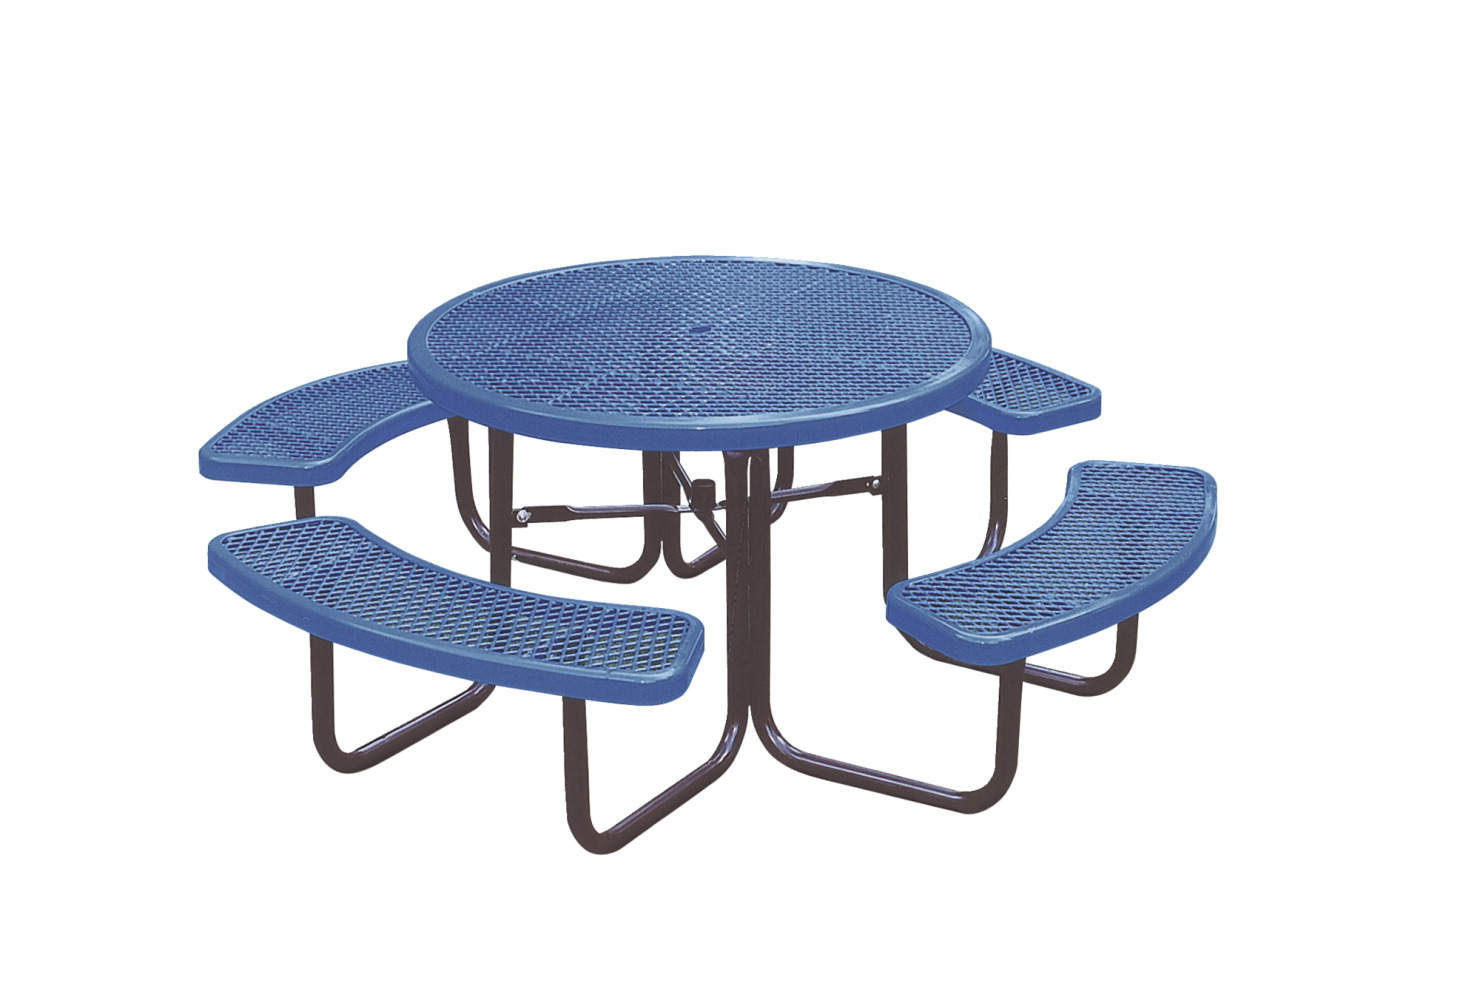 UltraSite UltraCoat Thermoplastic Picnic Table with Benches, 83-3/16 x 83-3/16 x 30-1/8 Inches, Various Options